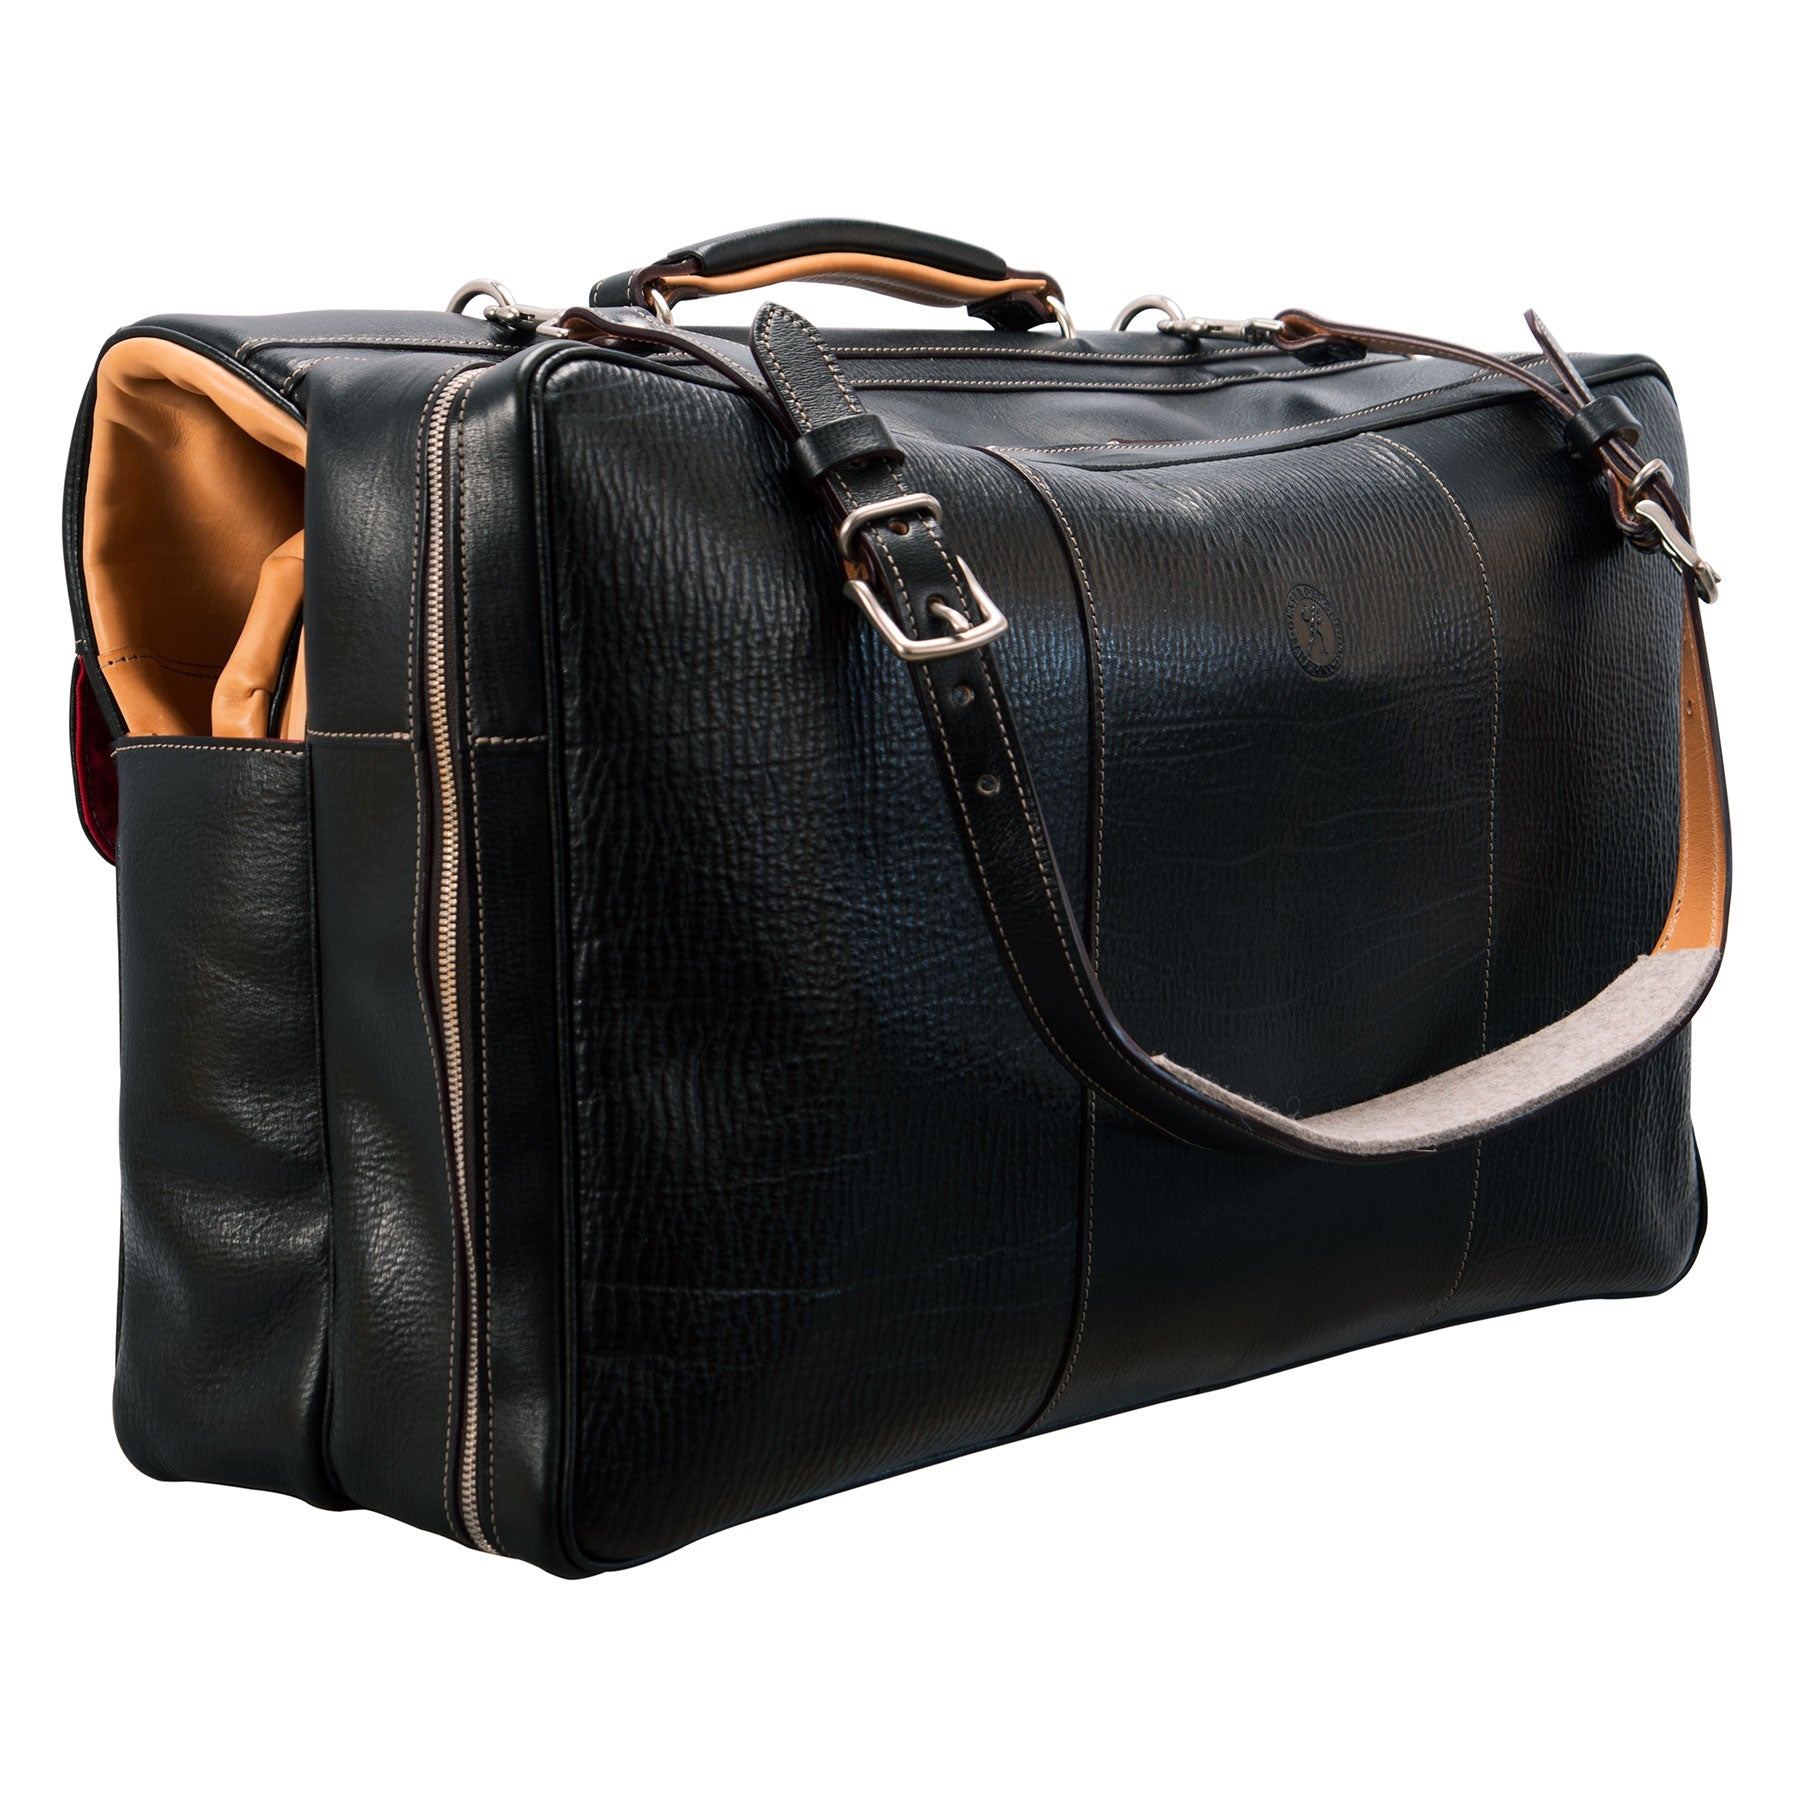 Garment Bag: hand-grained, hand-colored leather